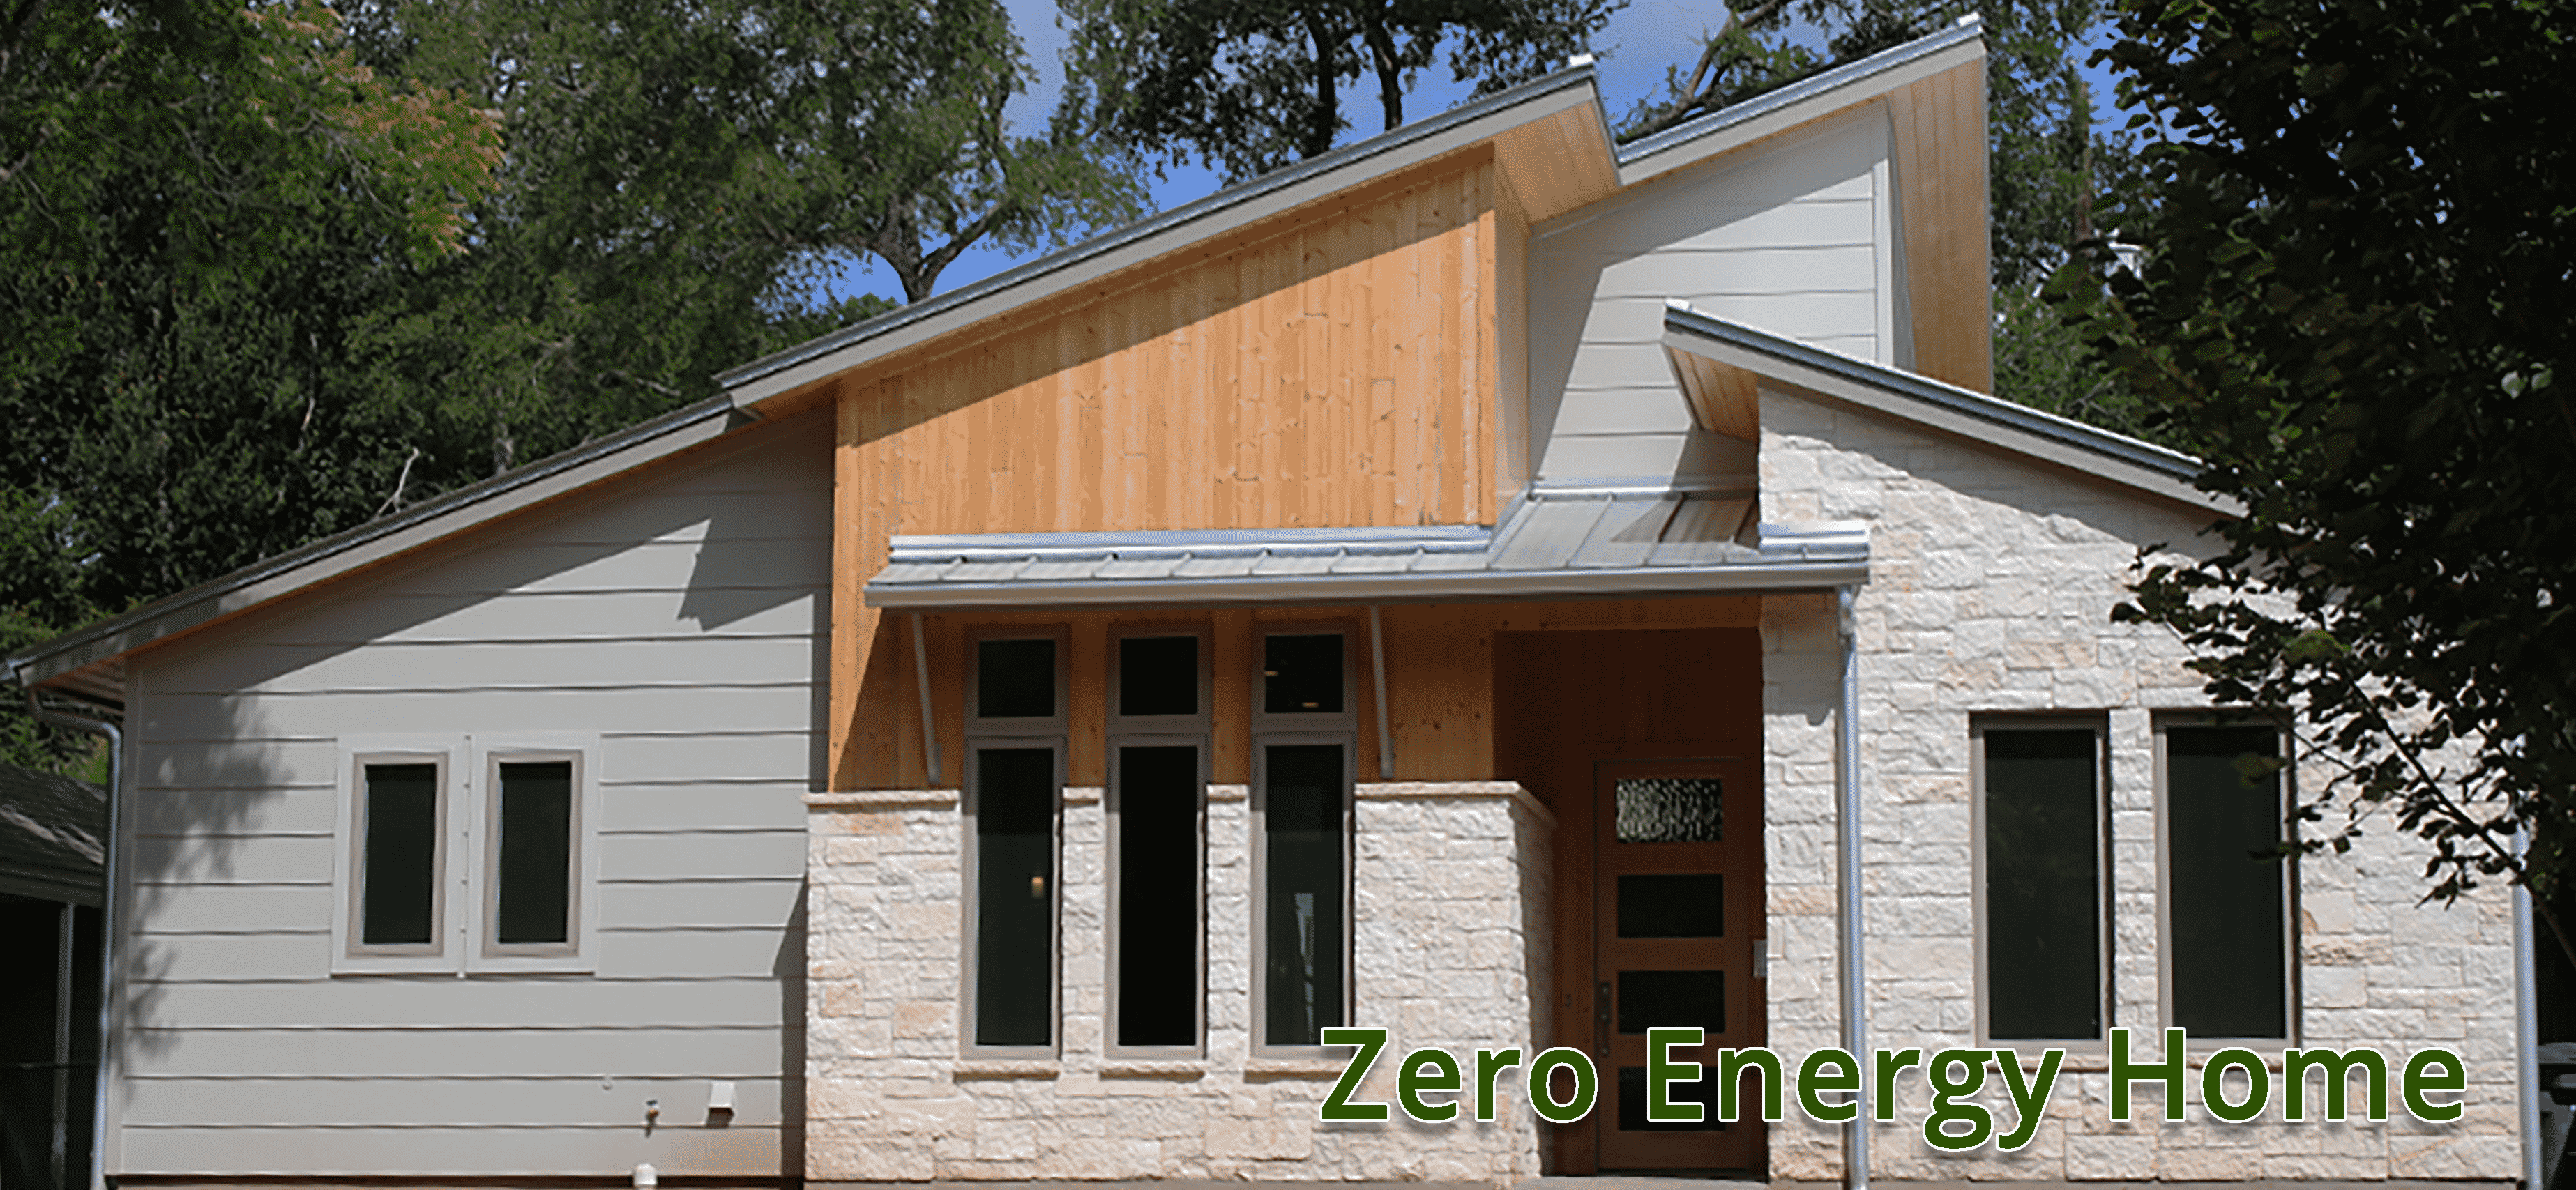 Zero energy home sustainable home building for Zero energy homes